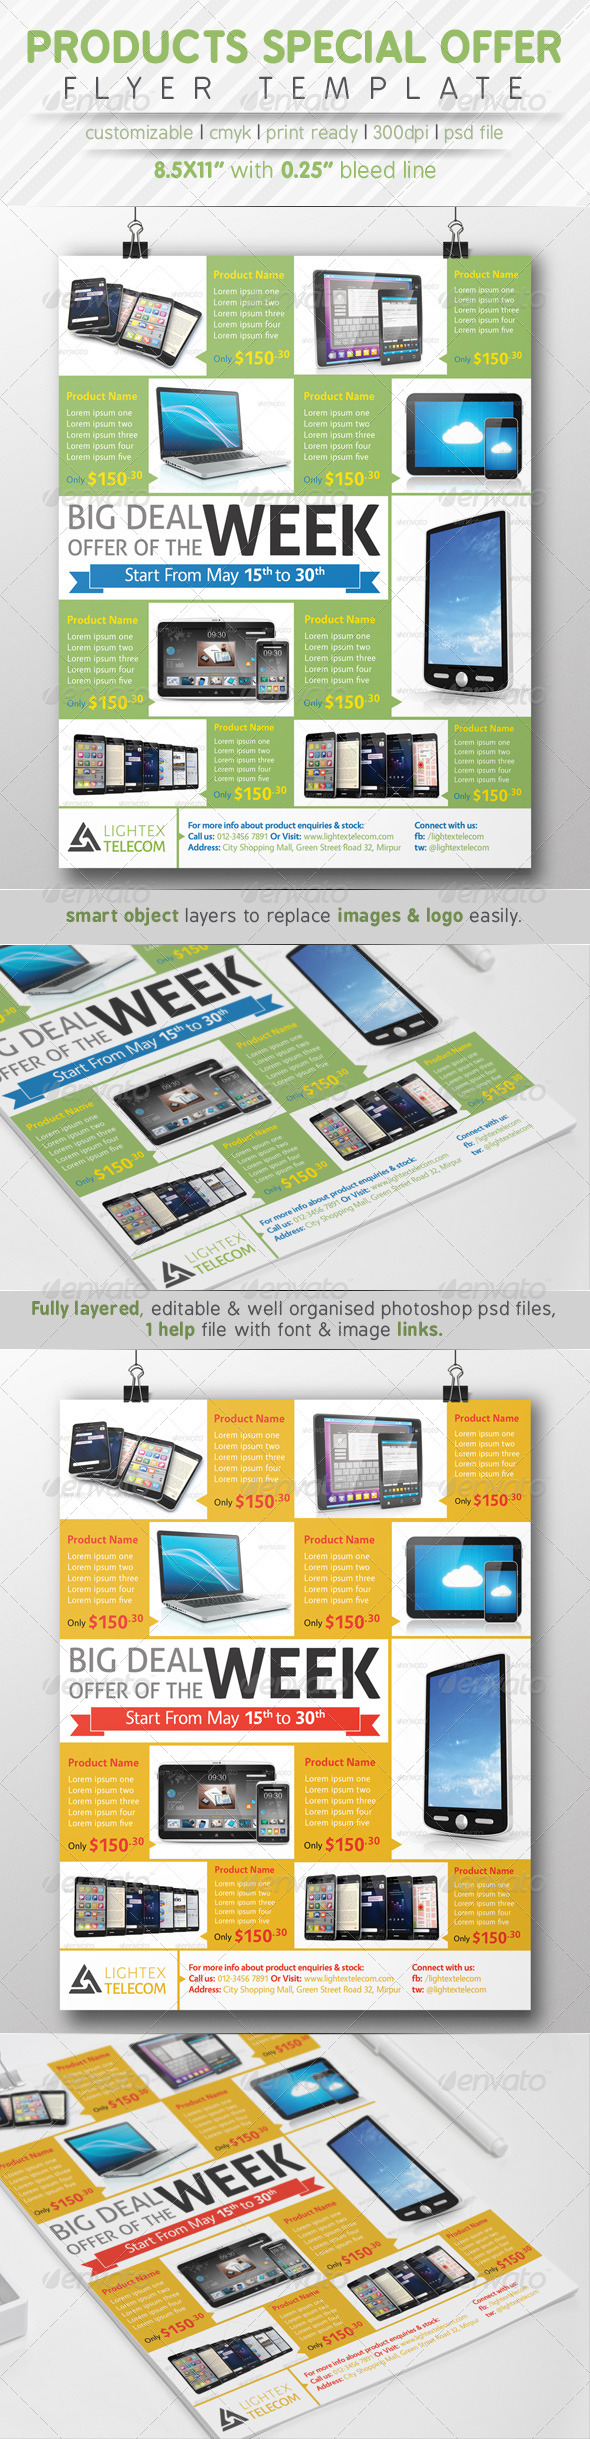 GraphicRiver Products Special Offer Flyer Ads 7784967